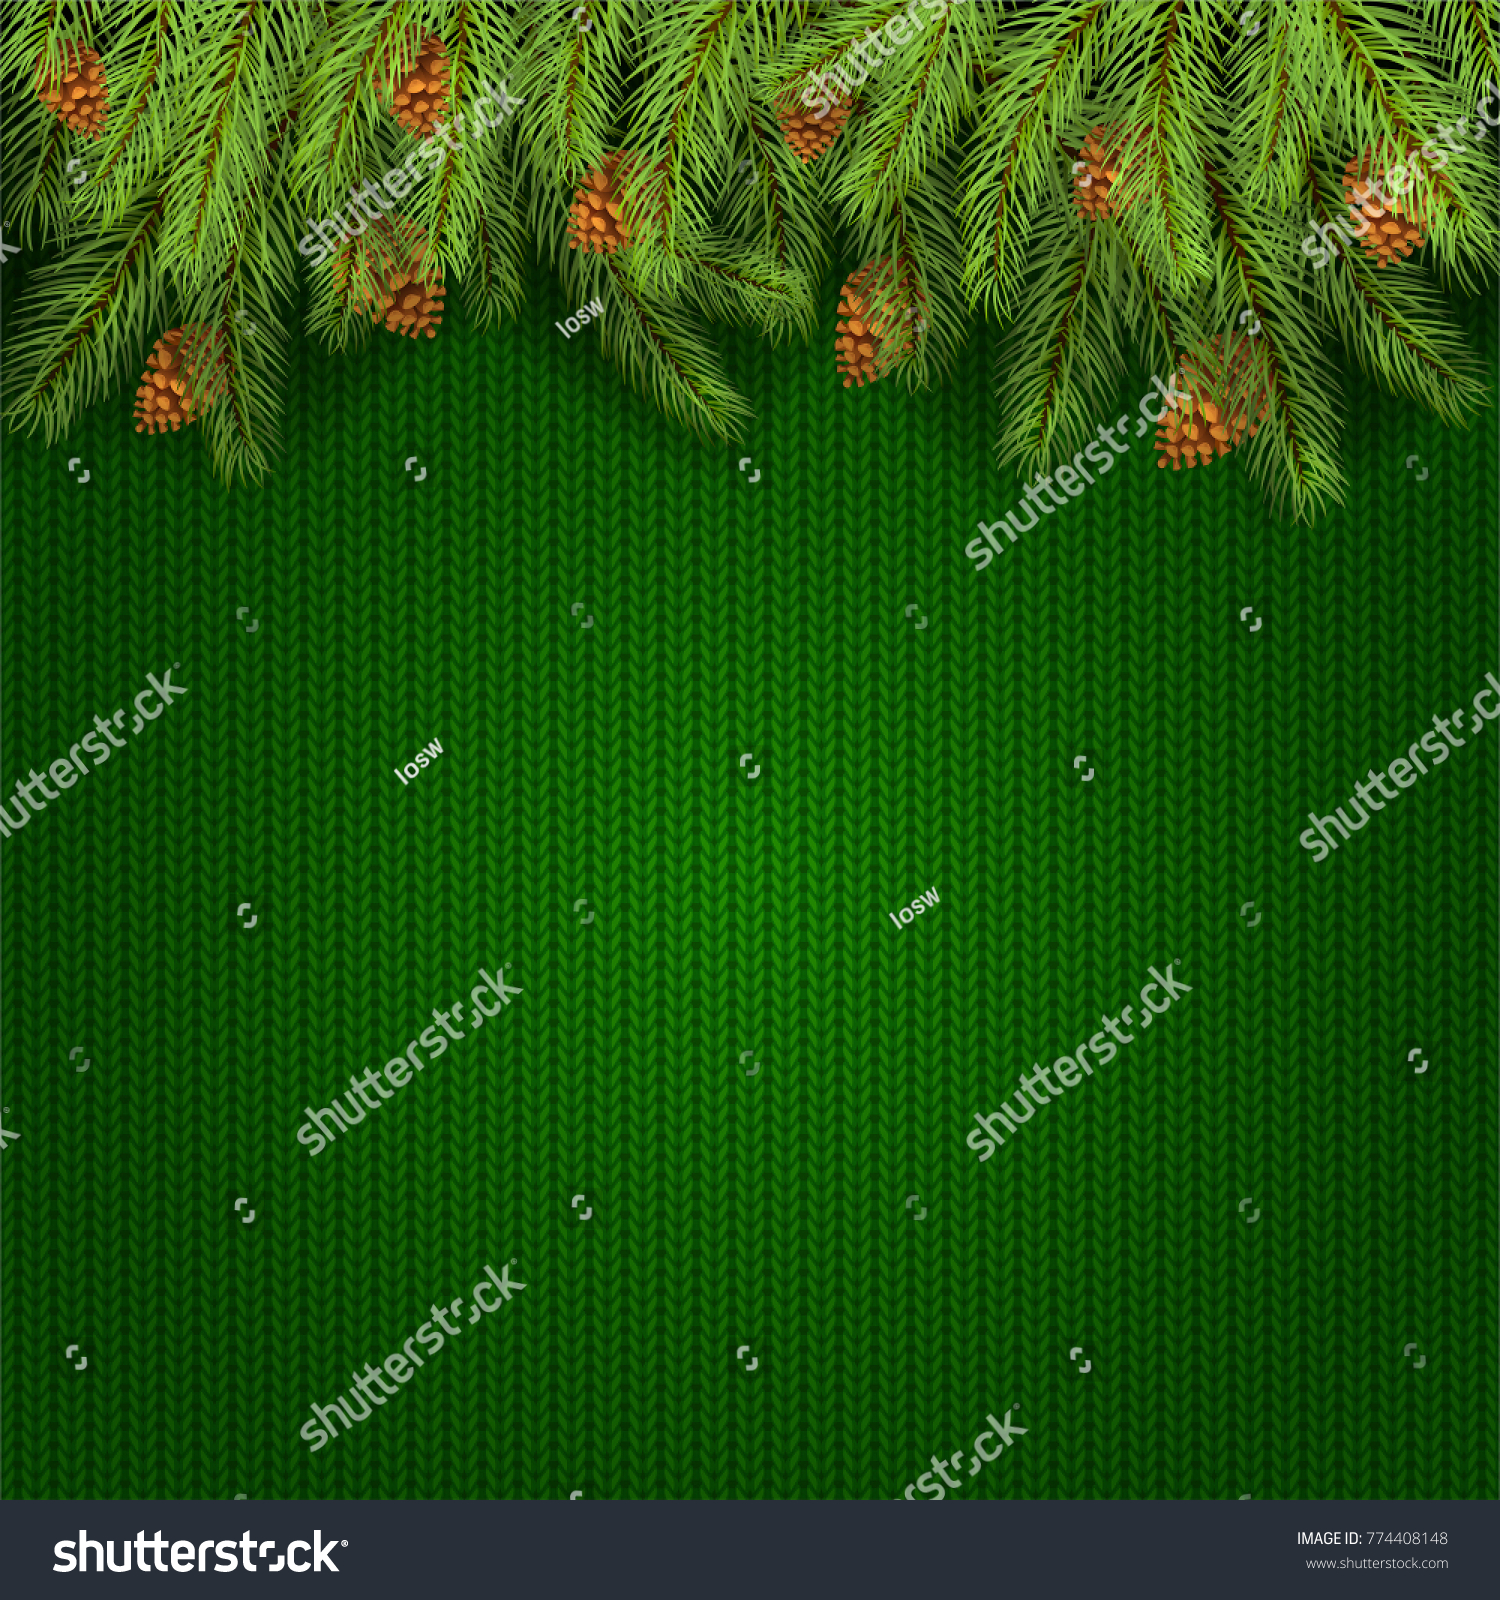 Christmas background spruce branches pine cones stock vector christmas background and spruce branches with pine cones holiday decorations on green knitted pattern bankloansurffo Images